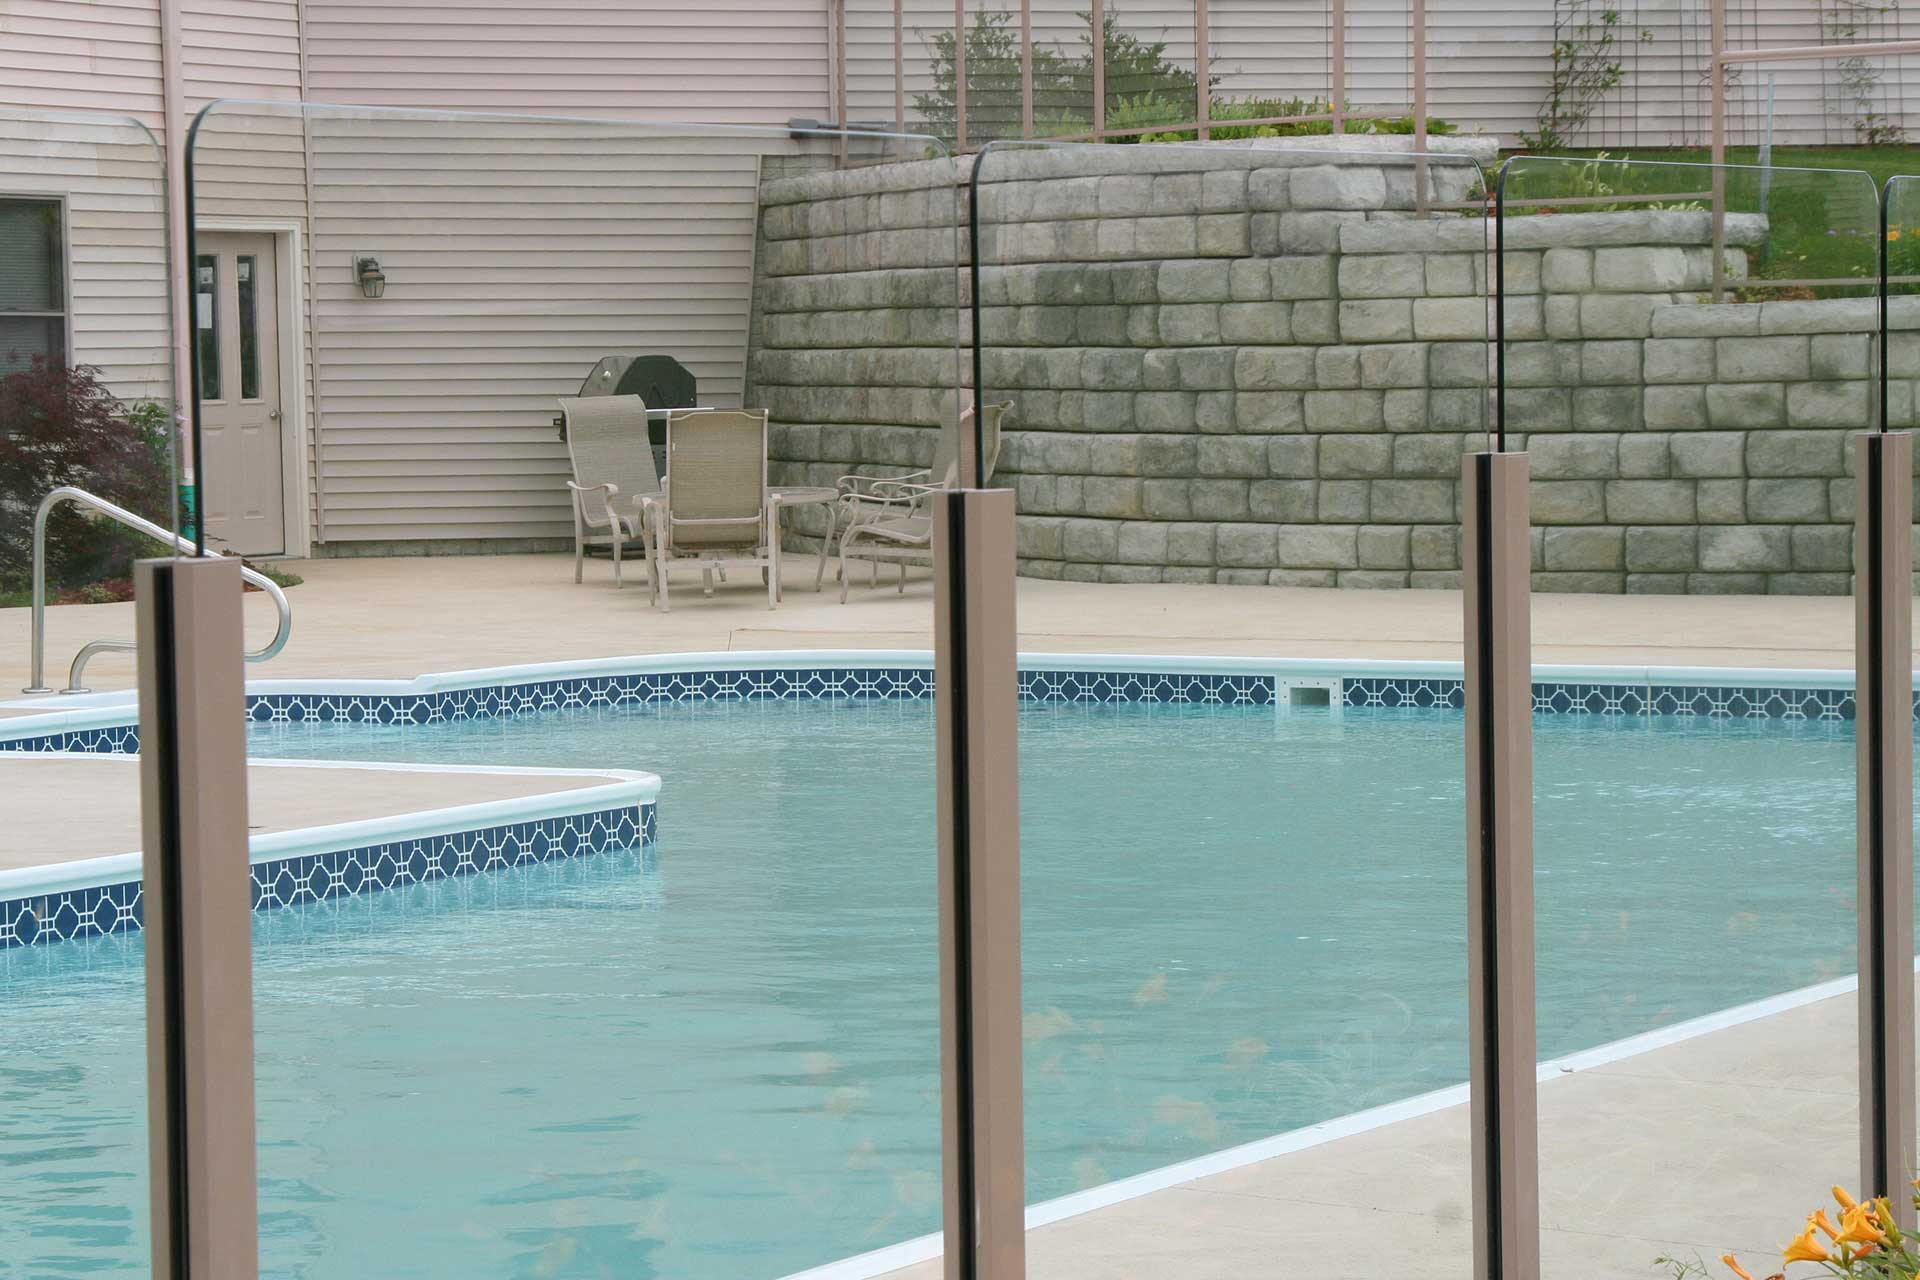 Fencing and Pool Area Images Gallery | Durarail Aluminum